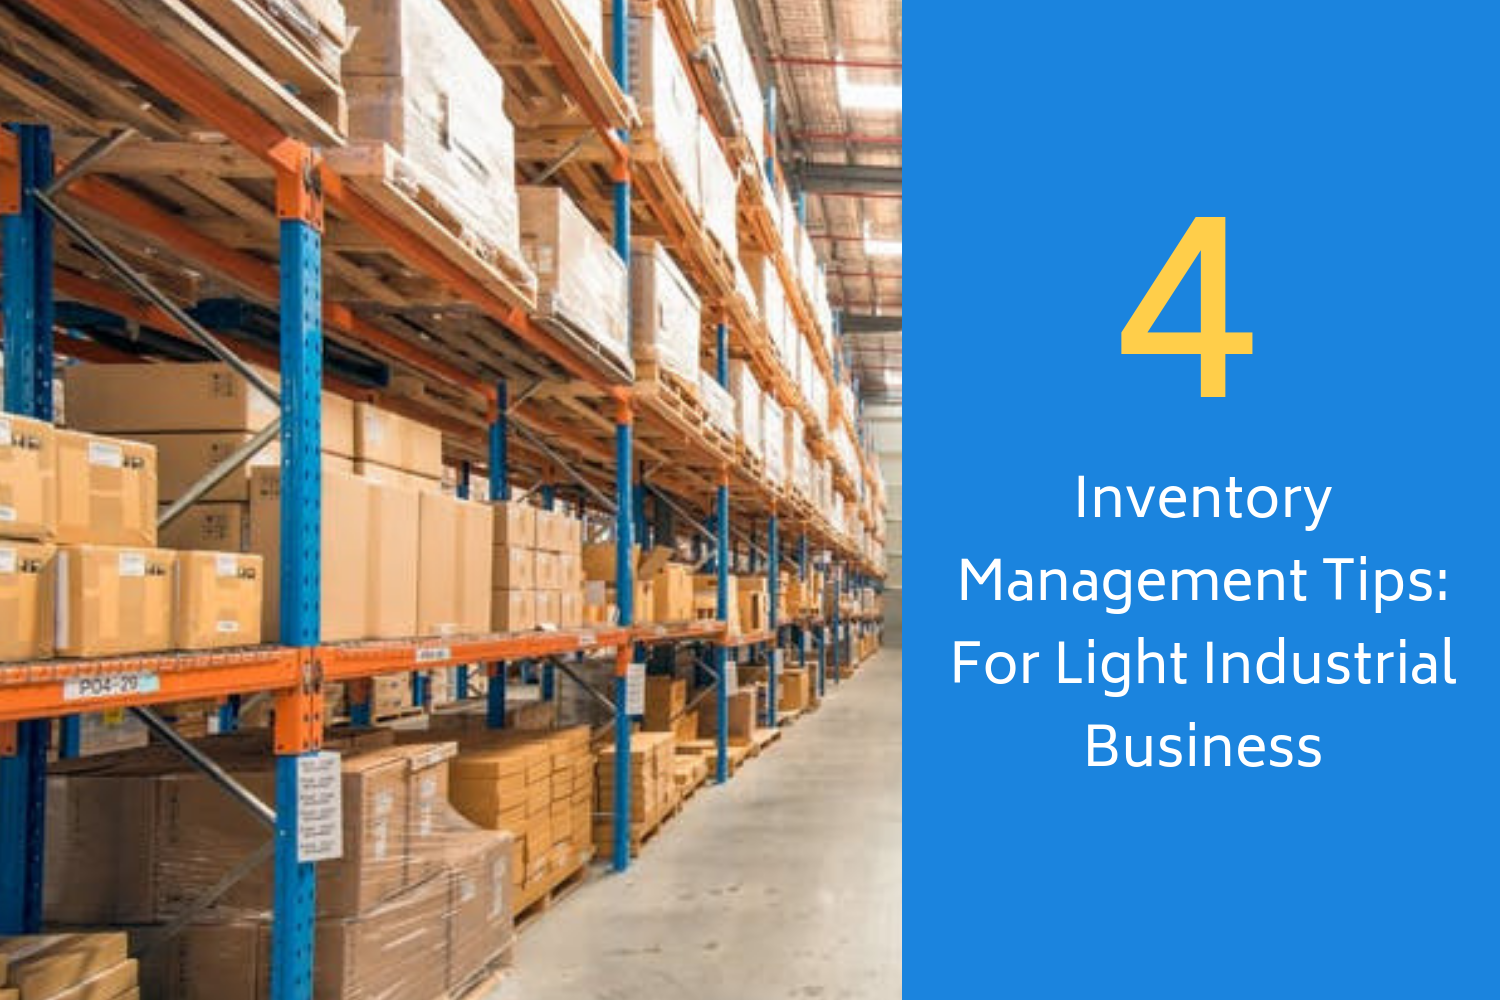 4 Inventory Management Tips